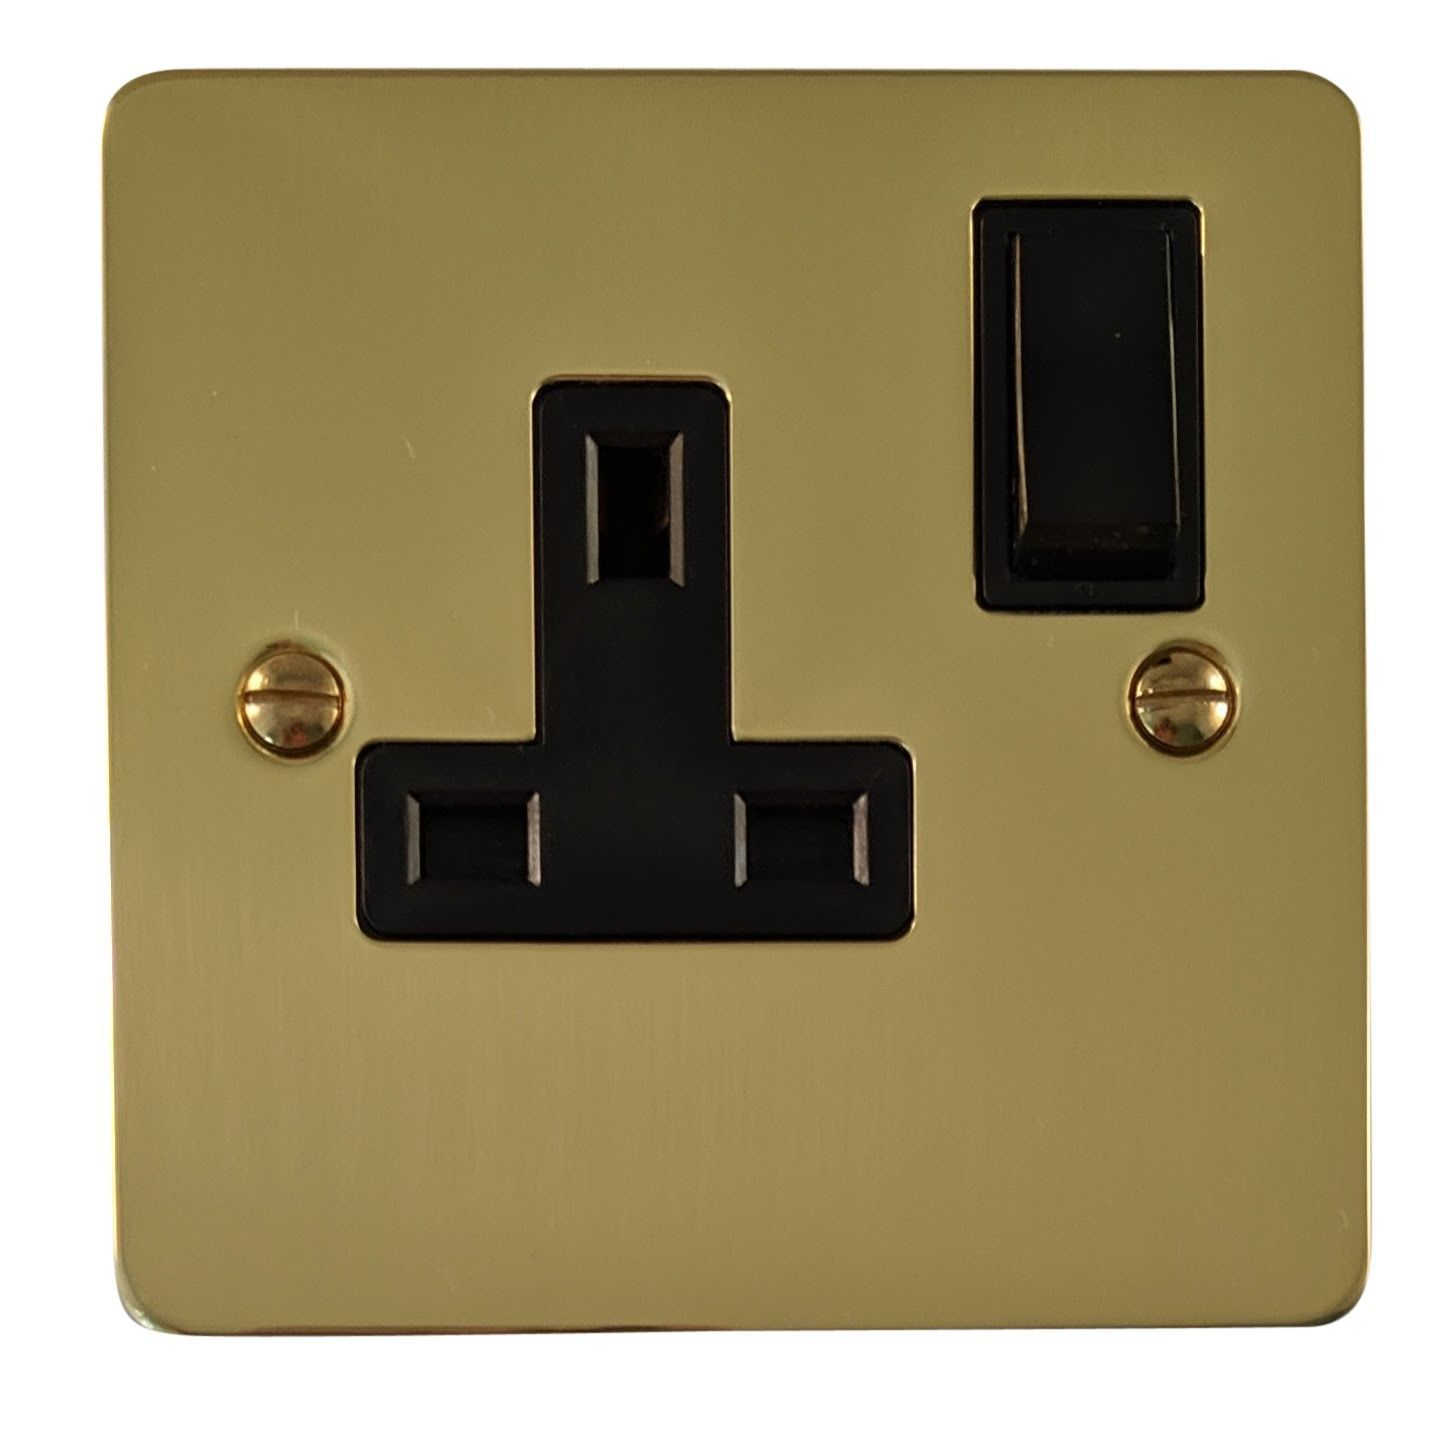 G&H FB9B Flat Plate Polished Brass 1 Gang Single 13A Switched Plug Socket